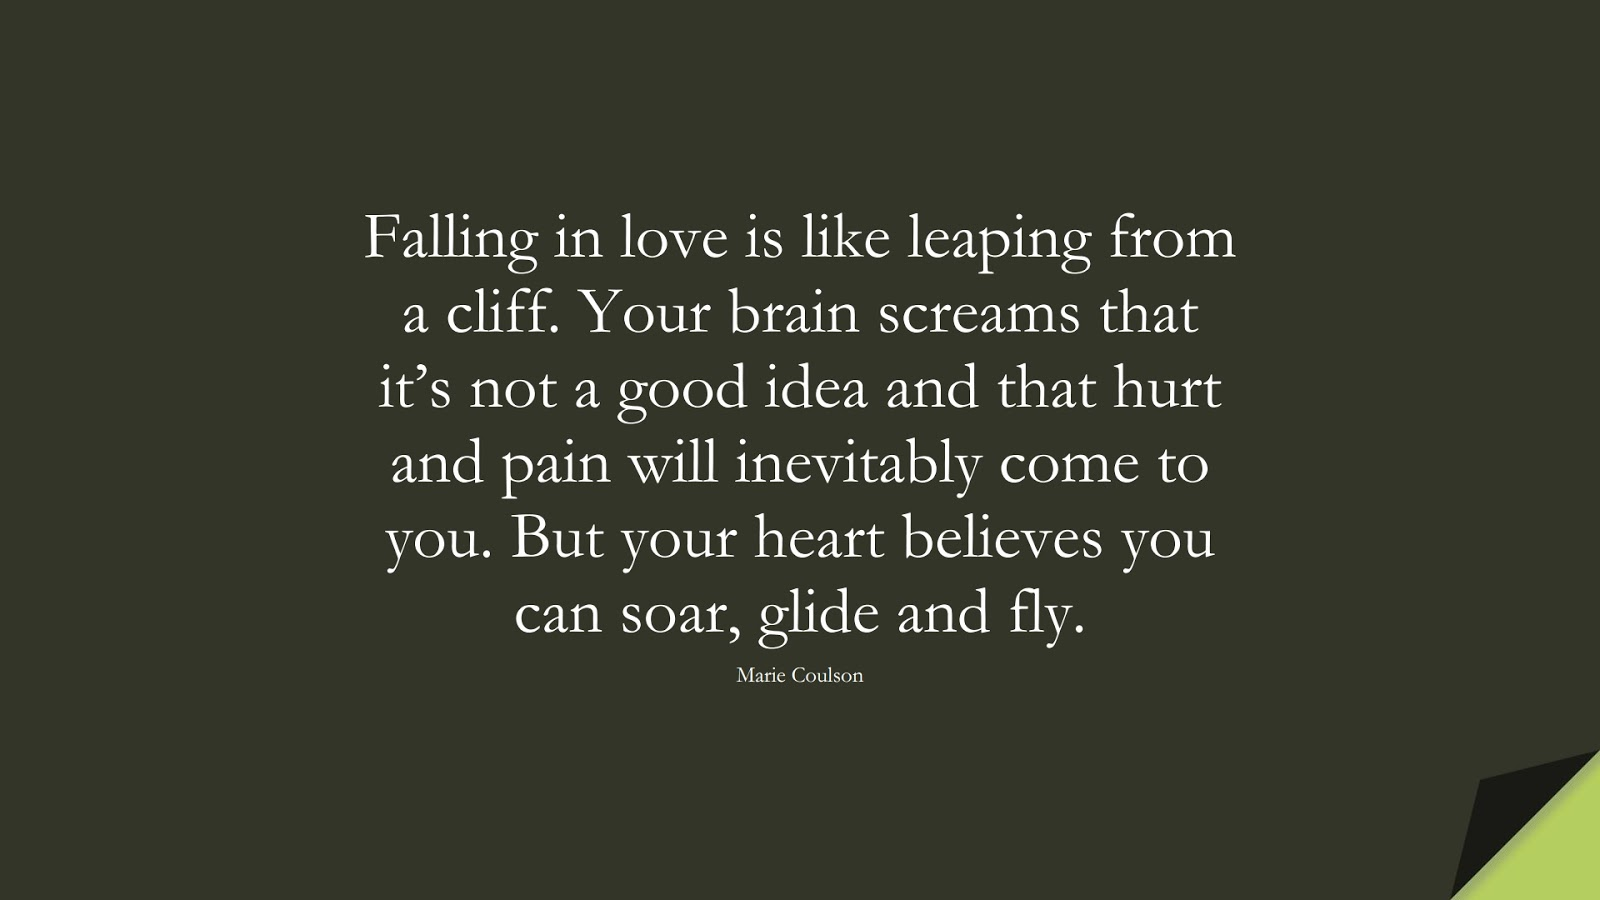 Falling in love is like leaping from a cliff. Your brain screams that it's not a good idea and that hurt and pain will inevitably come to you. But your heart believes you can soar, glide and fly. (Marie Coulson);  #LoveQuotes